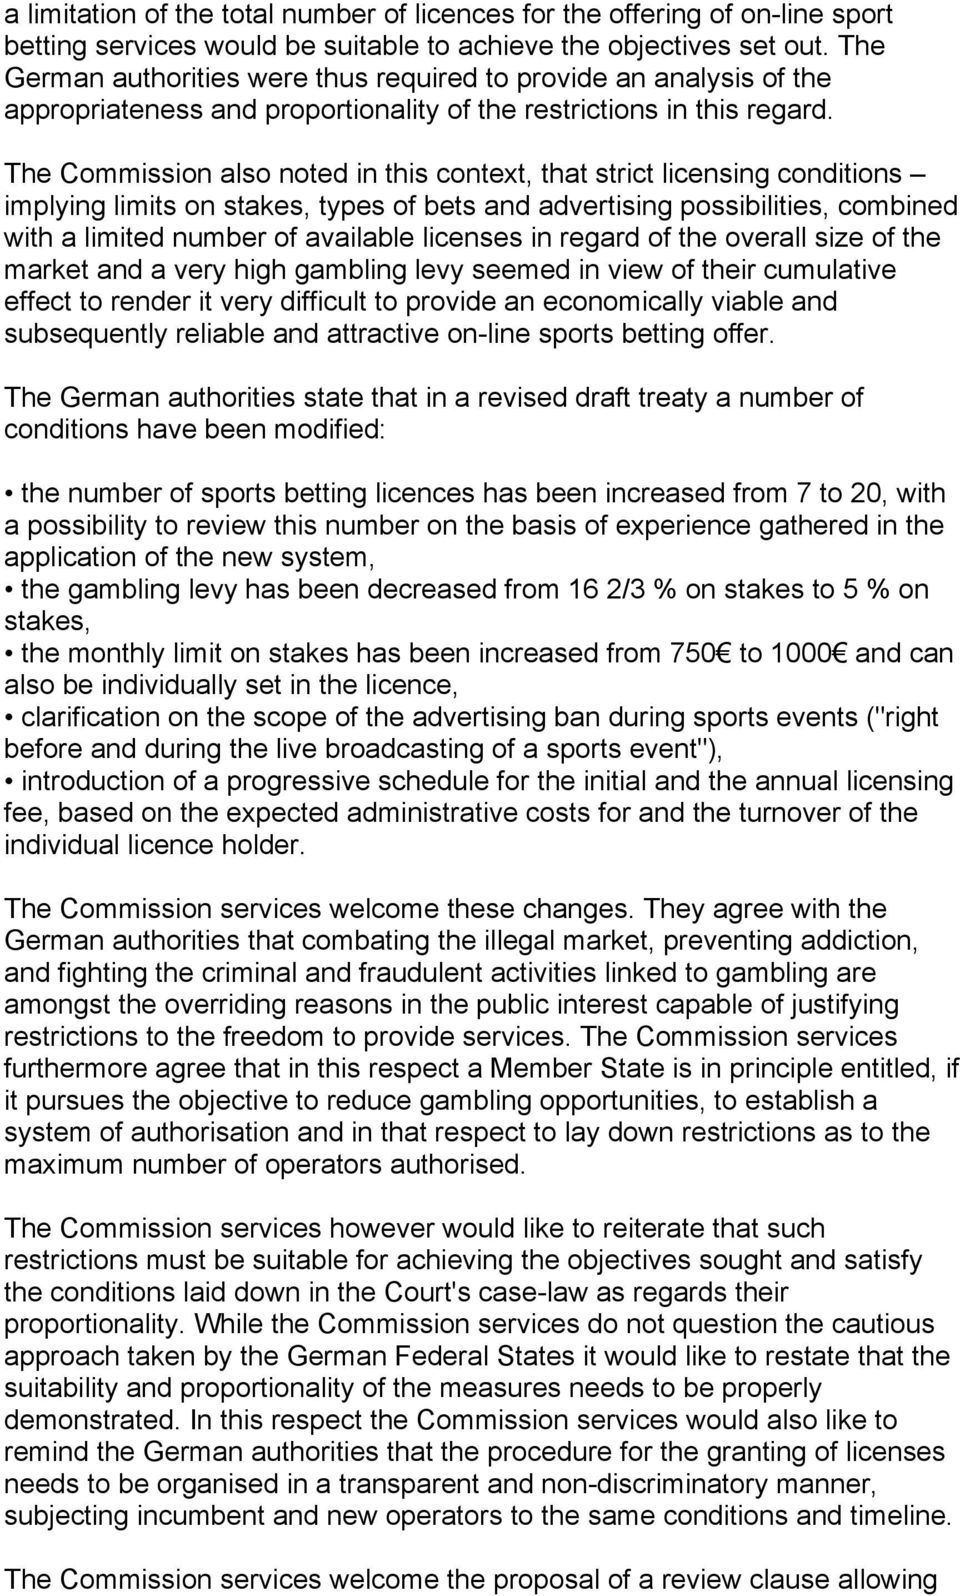 The Commission also noted in this context, that strict licensing conditions implying limits on stakes, types of bets and advertising possibilities, combined with a limited number of available